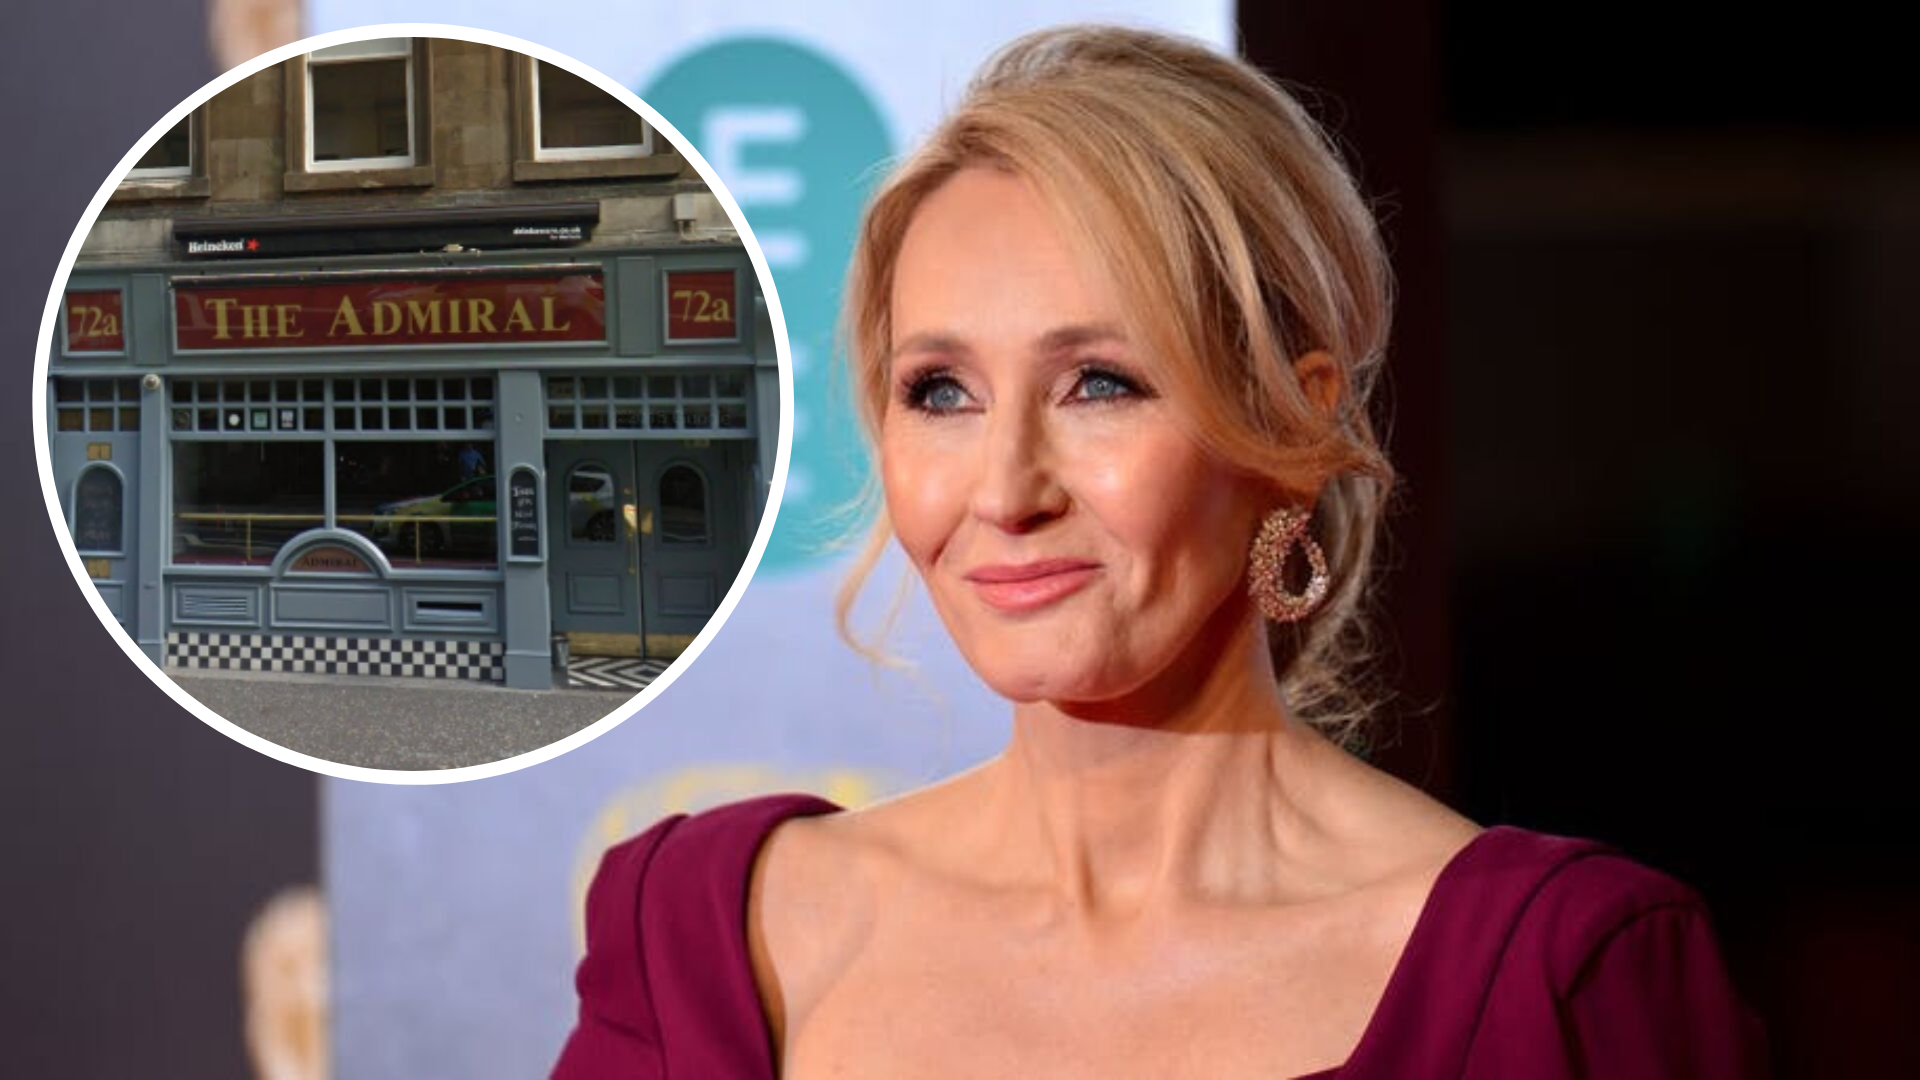 JK Rowling spotted in Glasgow's Admiral Bar while supporting husband's band